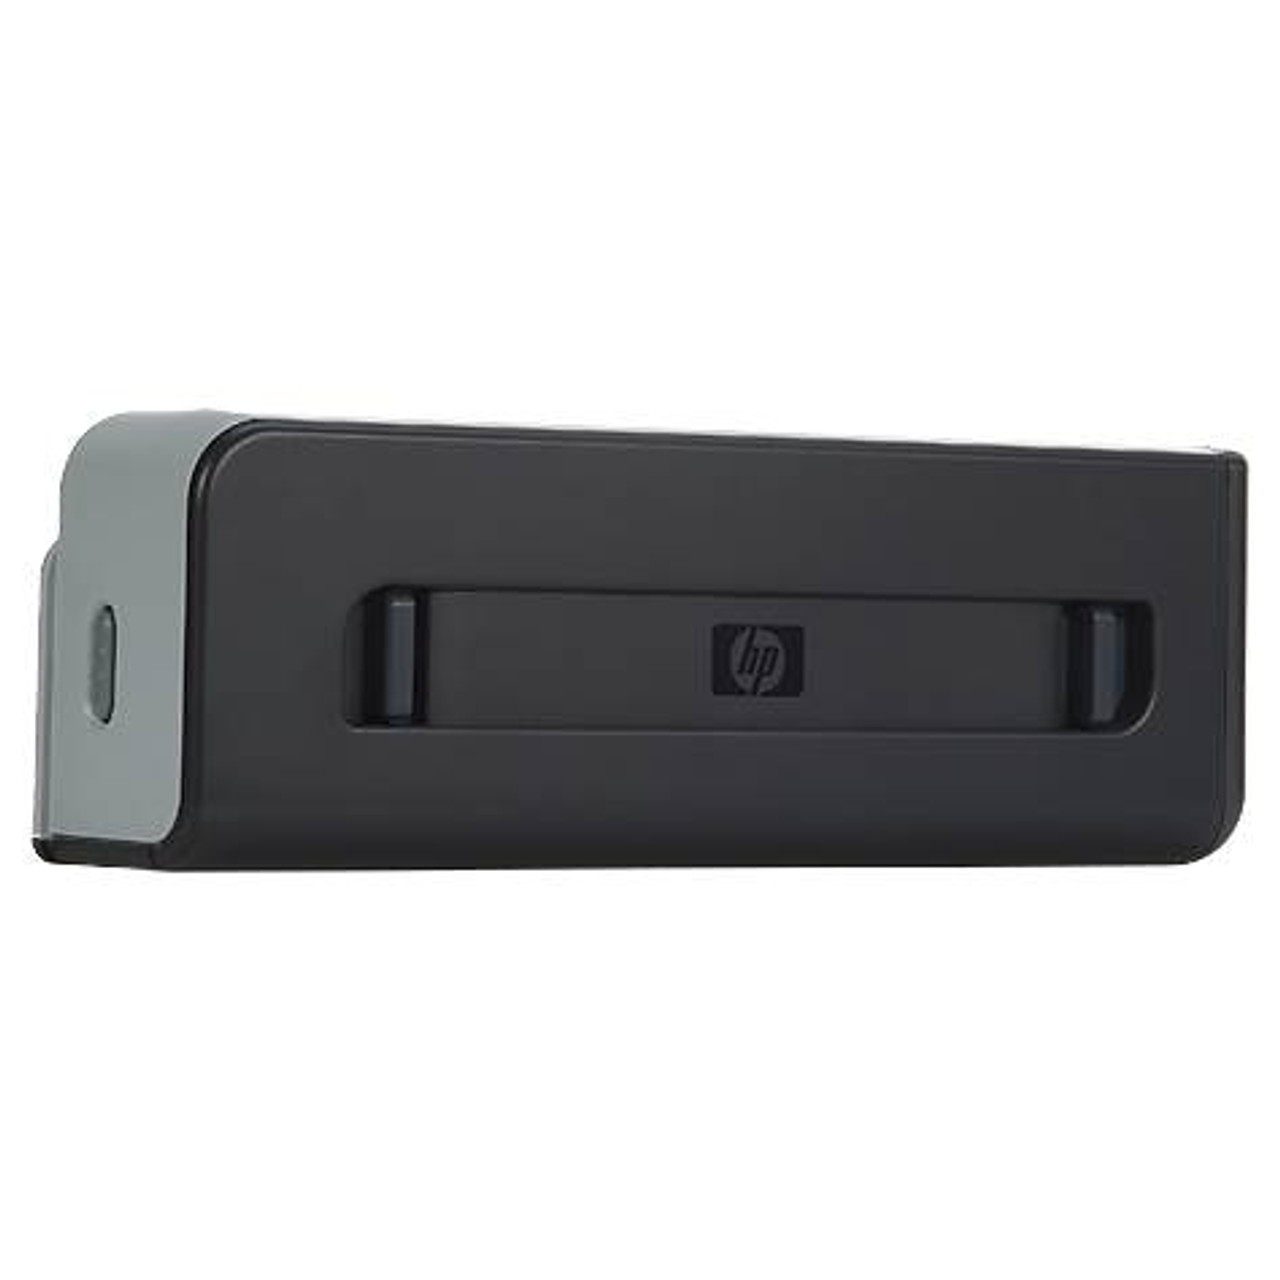 Image for HP Inkjet Automatic Two-sided Printing Accessory (C7G18A) CX Computer Superstore